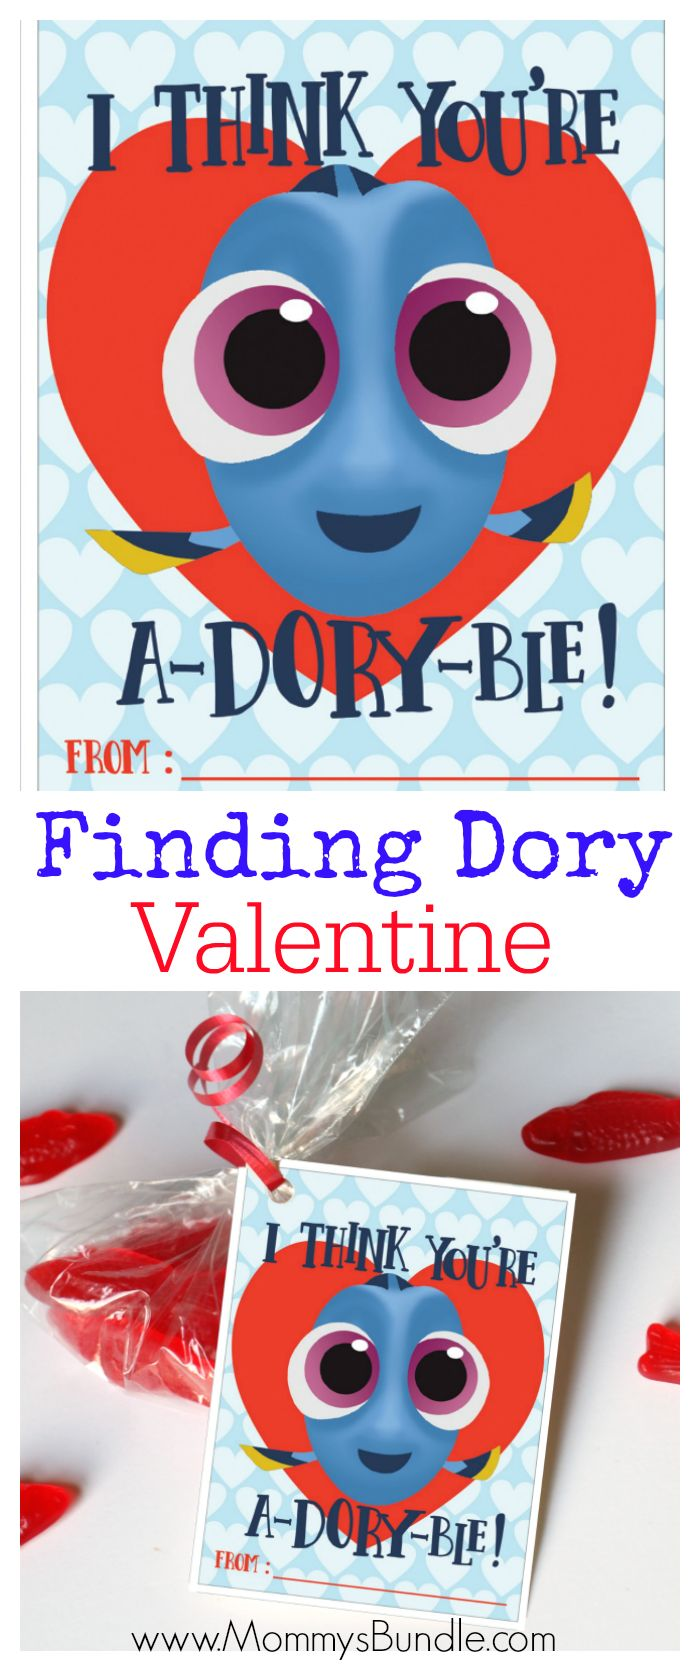 Valentine craft for preschoolers - Adorable Finding Dory Printable Valentines For Kids The Perfect Valentine For A Preschooler Or Small